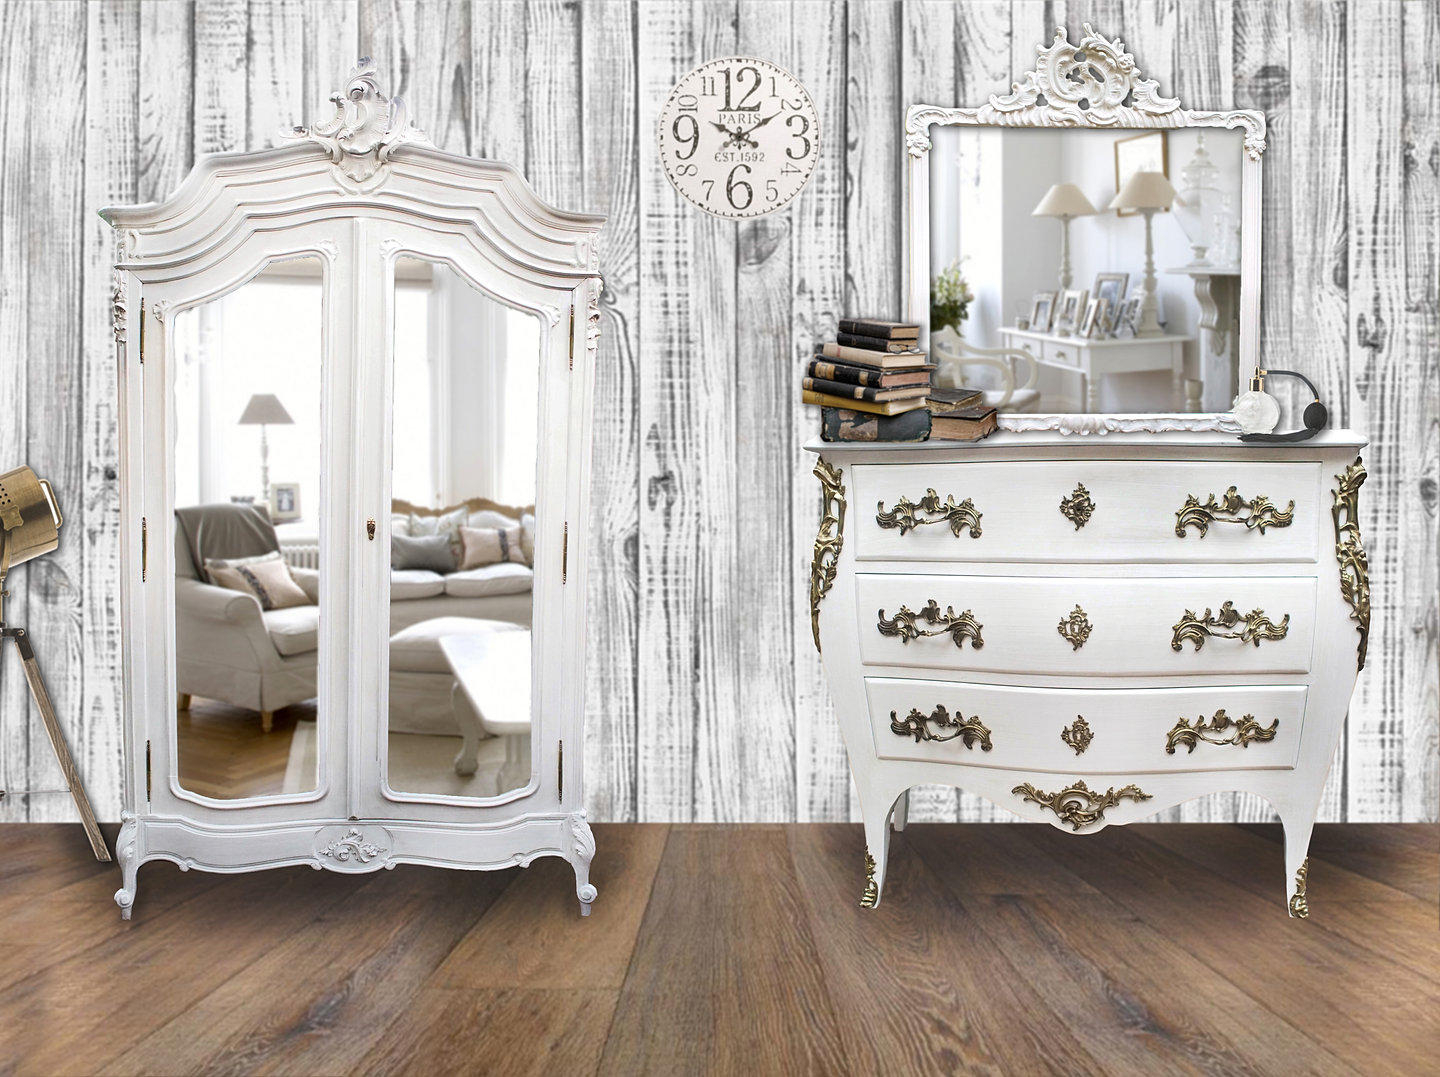 les meubles patin s paris alben168 louis xv baroque peint blanc. Black Bedroom Furniture Sets. Home Design Ideas